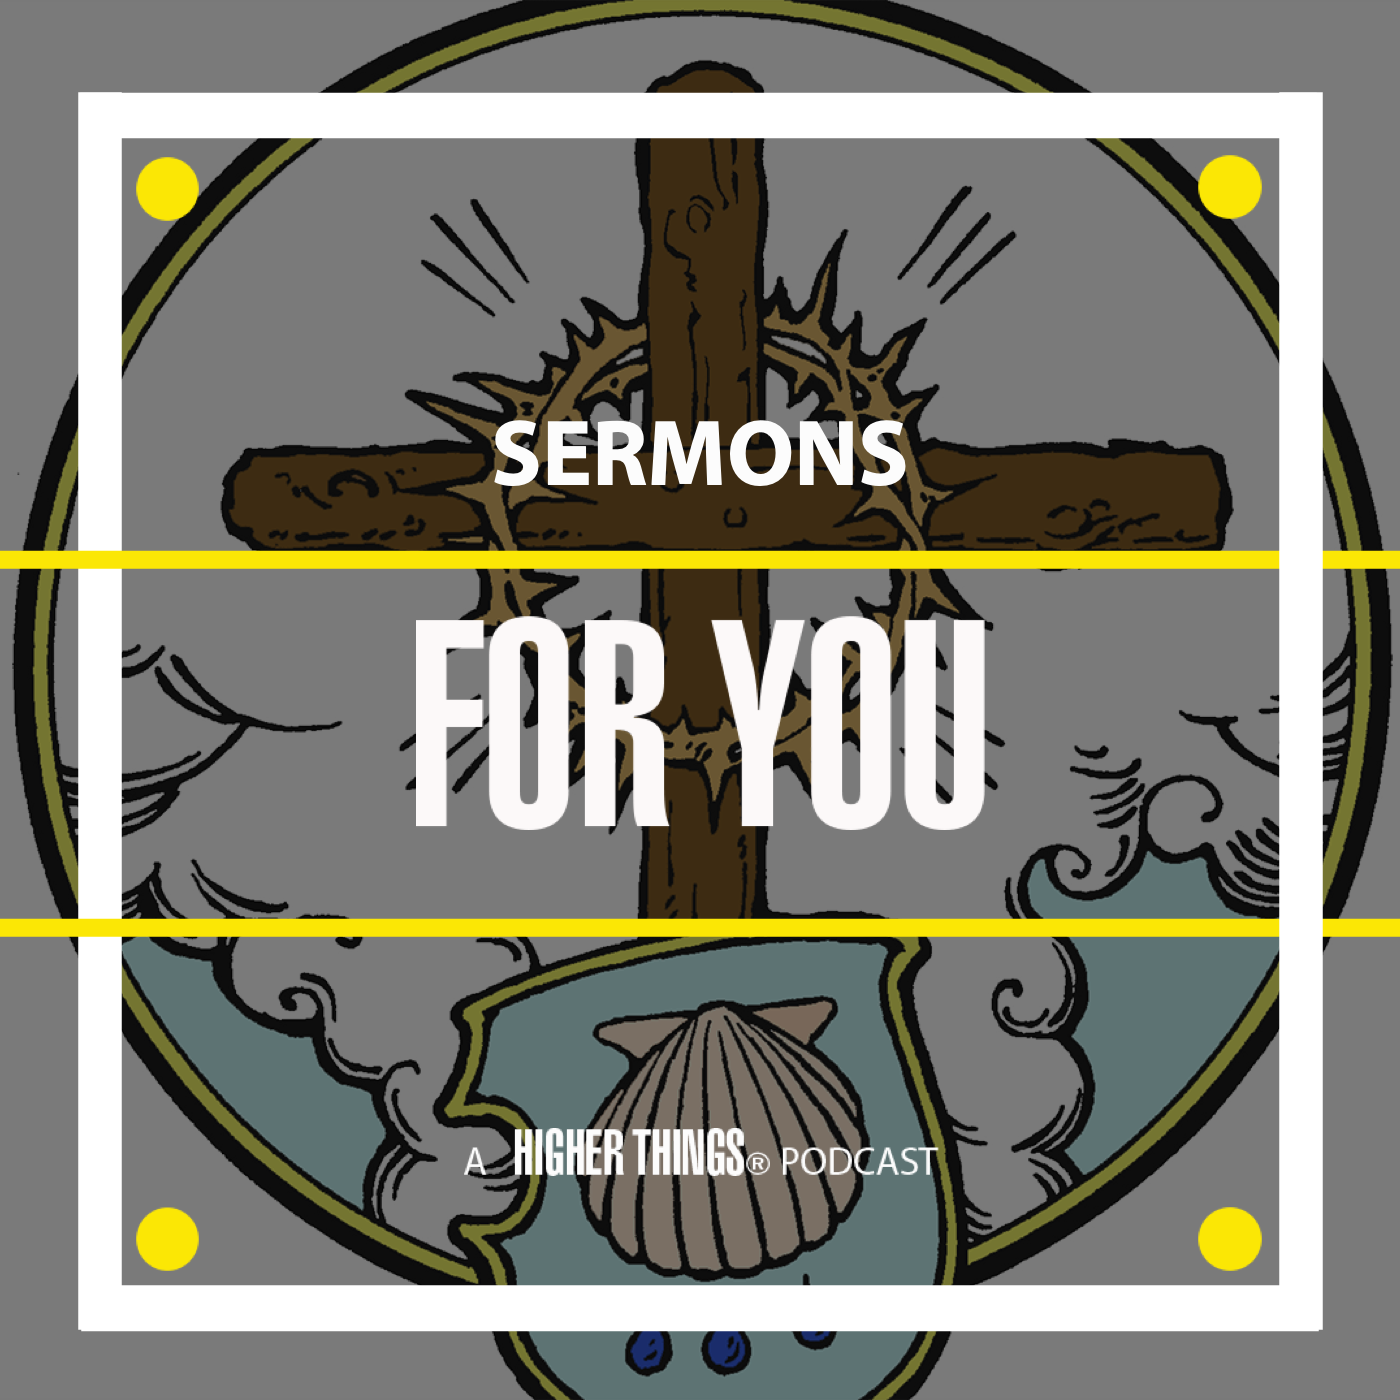 Sermons FOR YOU - Higher Things